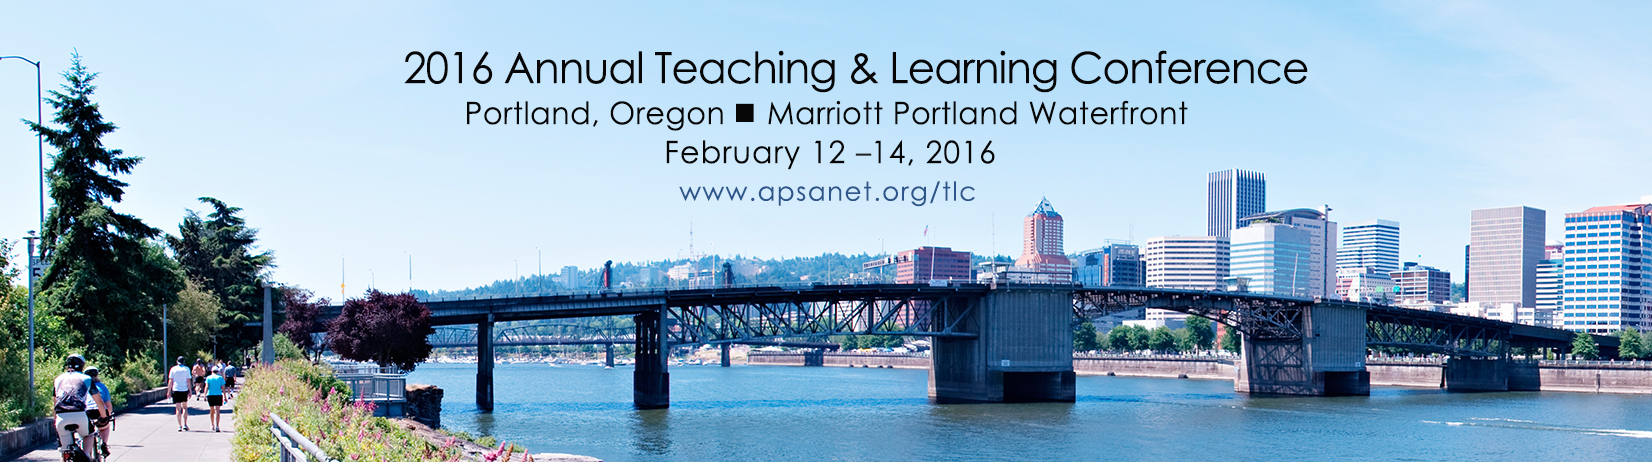 2016 Annual Teaching & Learning Conference - Portland, Oregon - Marriott Portland Waterfront - February 12 to 14, 2016